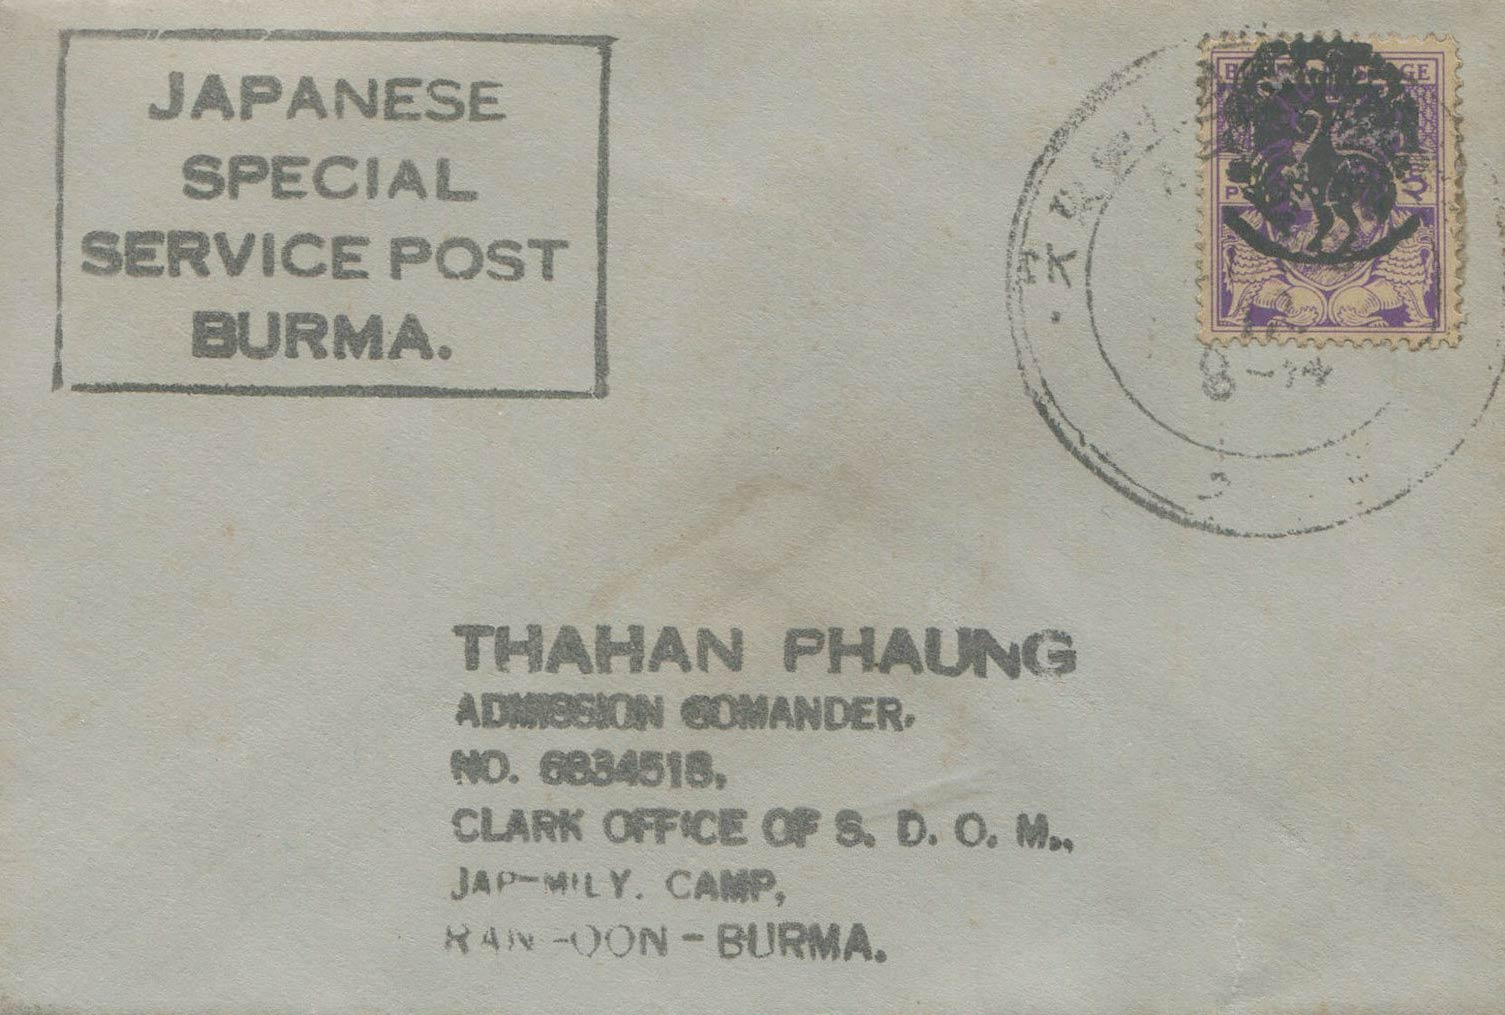 Burma_Japanese-Special-Service-Post_Cover_Forgery3